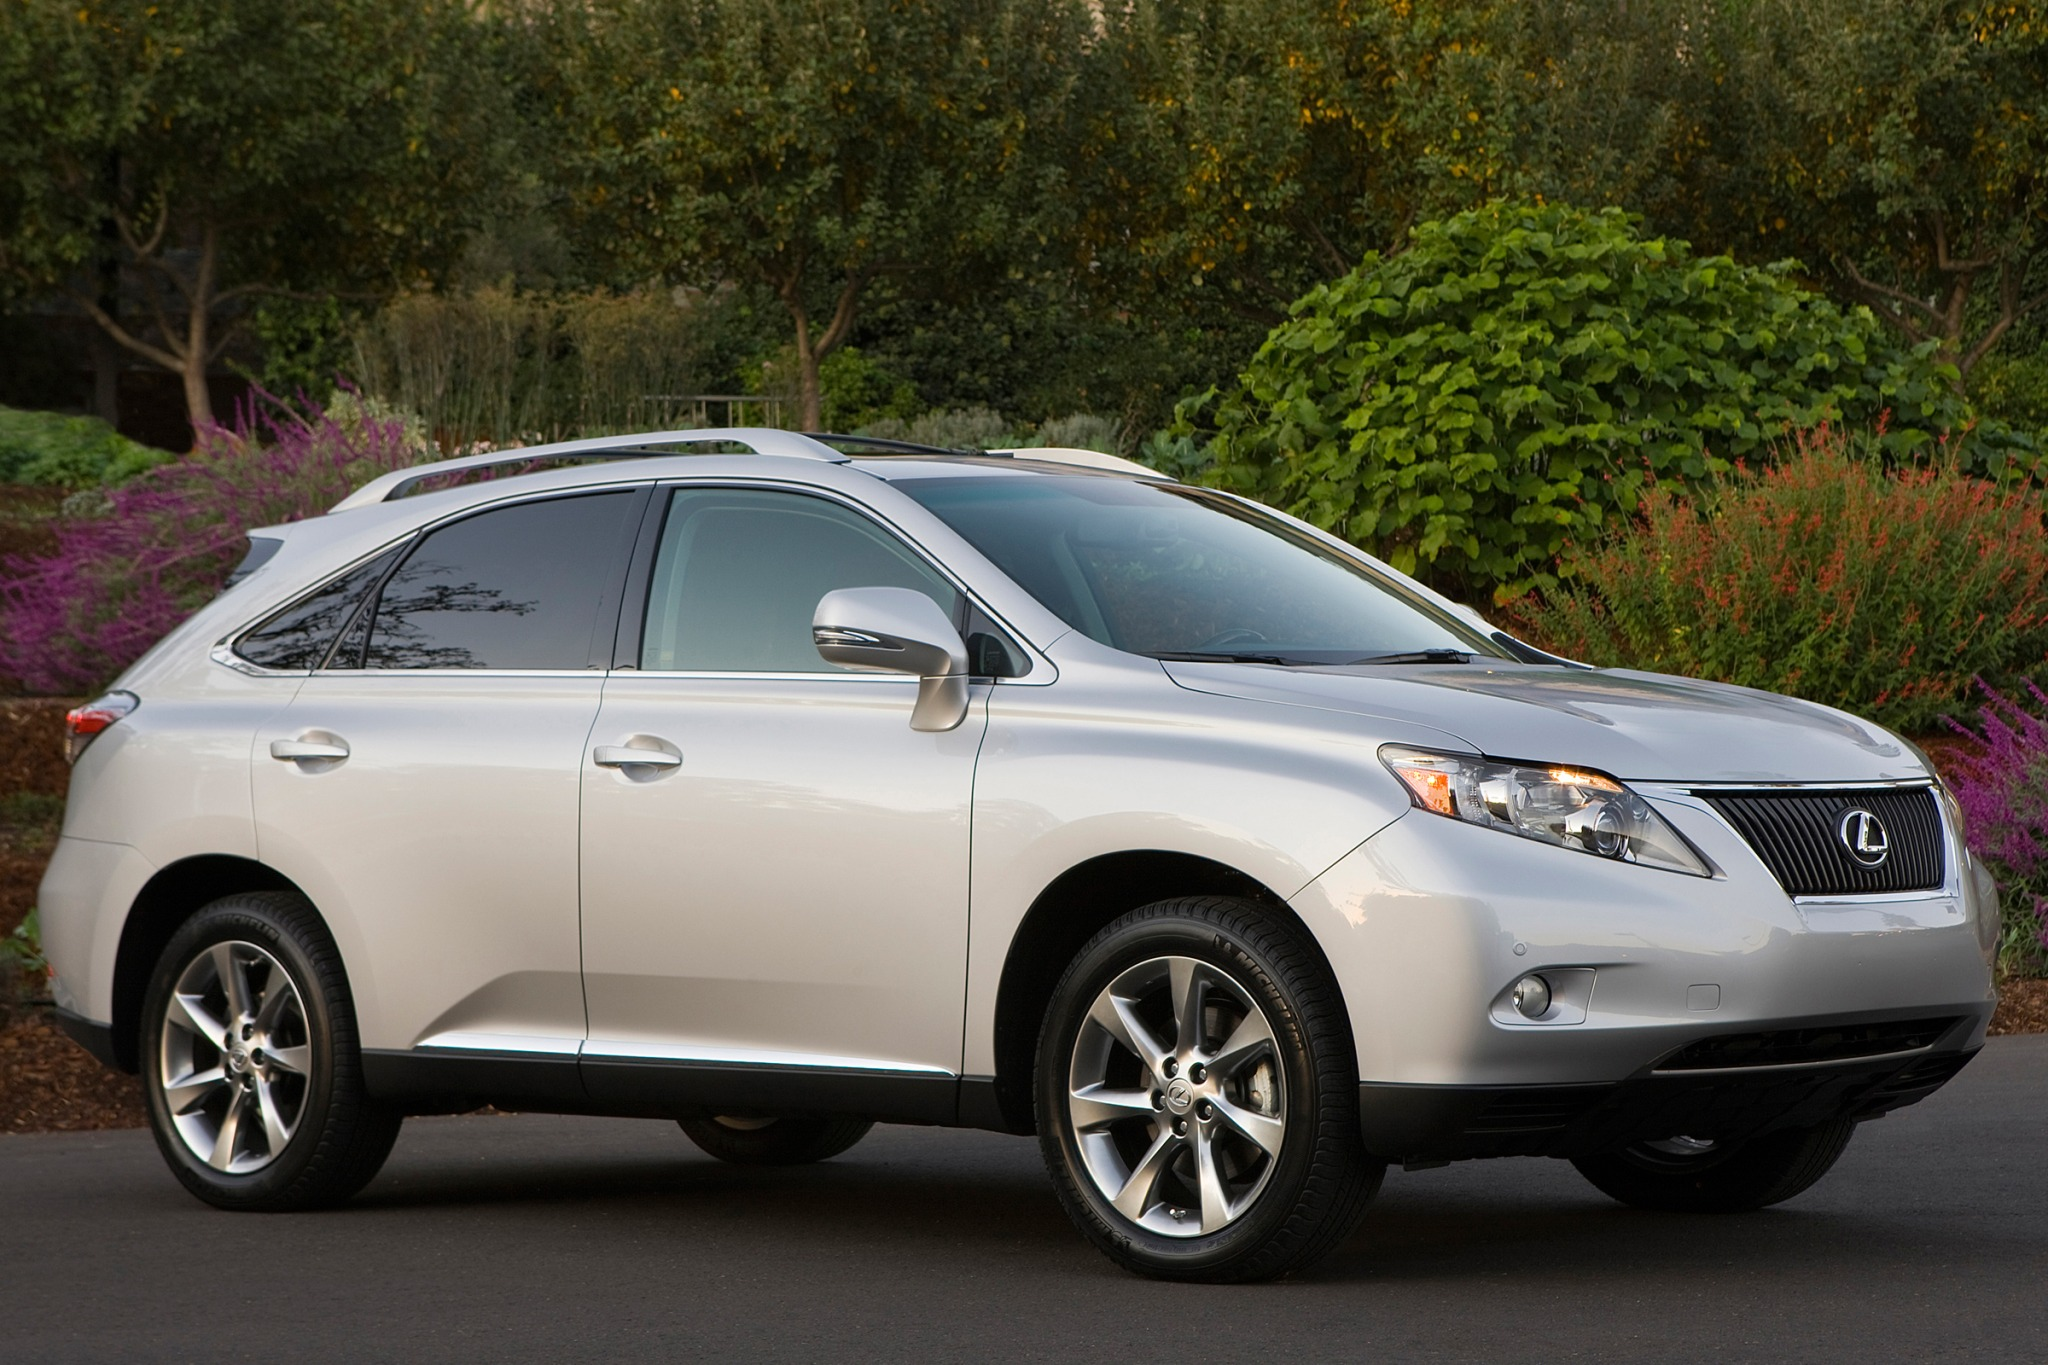 2010 Lexus RX 350 Information and photos ZombieDrive